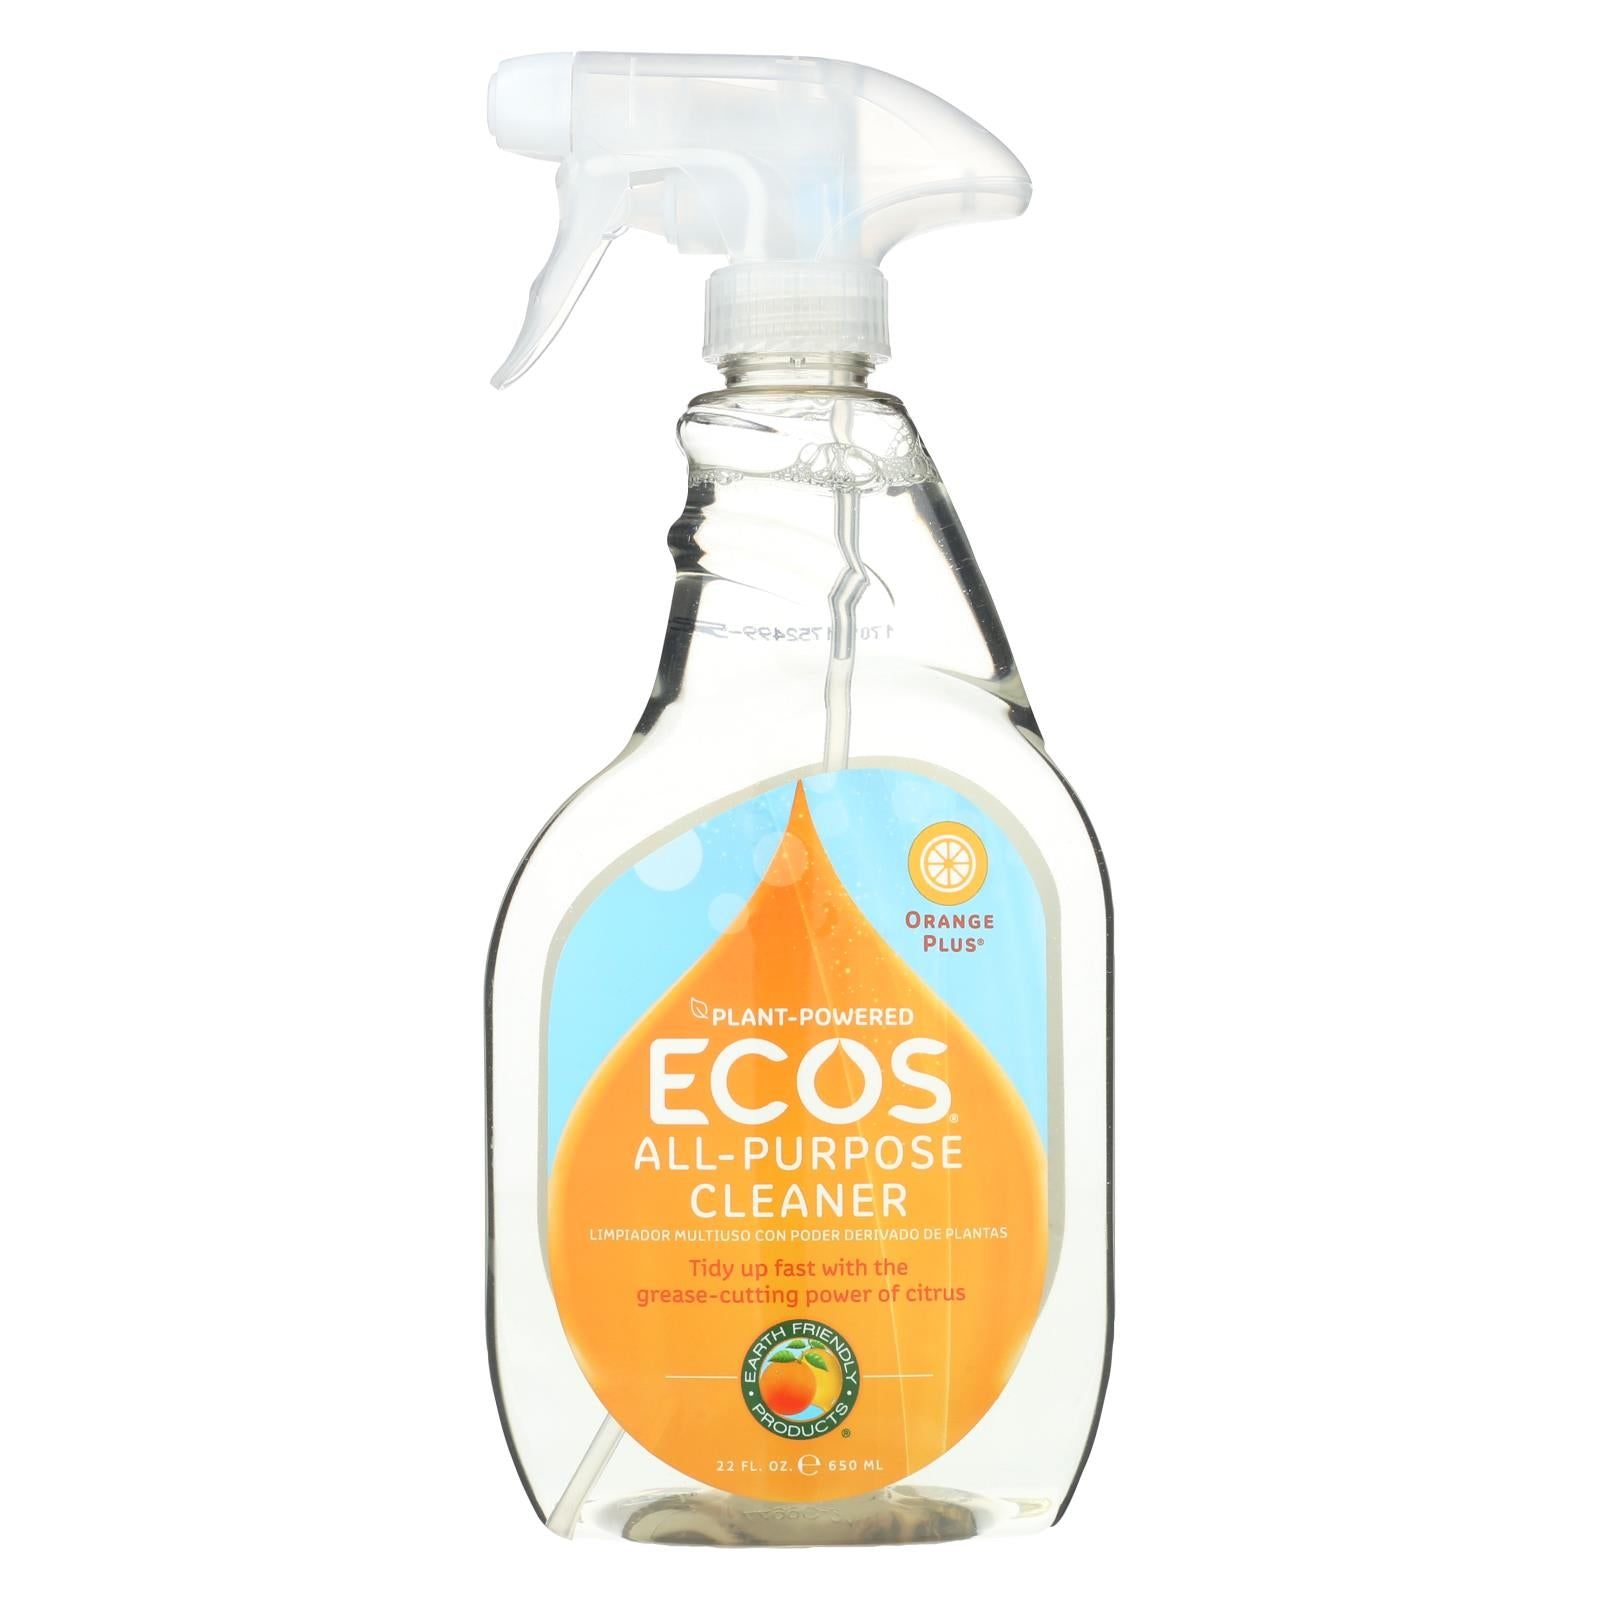 Buy Earth Friendly Orange Plus Cleaner Spray - 22 fl oz - Household Cleaners from Veroeco.com